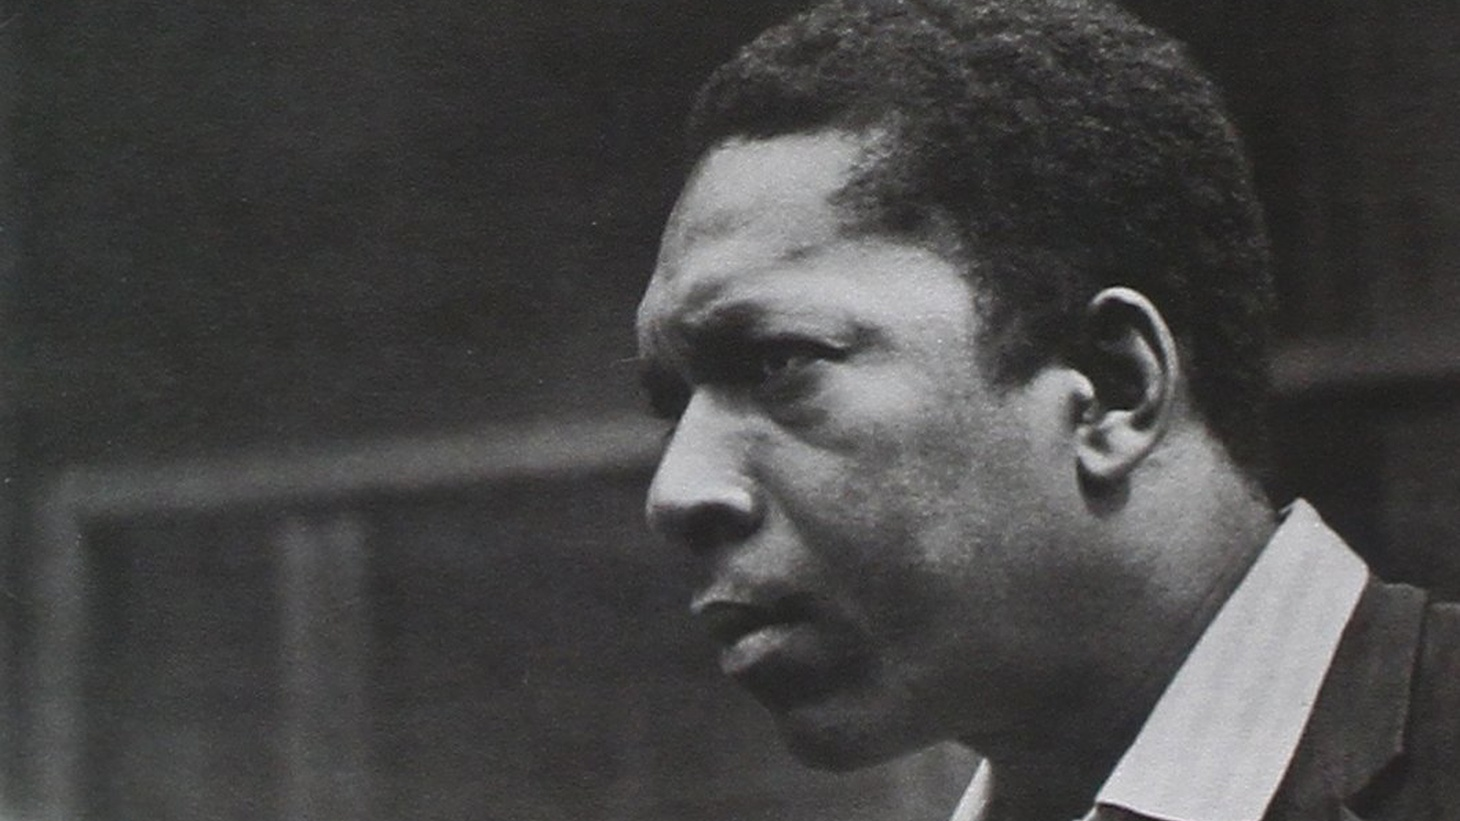 Tom talks with Ashley Kahn, co-producer of a new 3-CD / vinyl set of the Coltrane masterpiece A Love Supreme, with unearthed studio and live concert sessions that nobody knew existed.